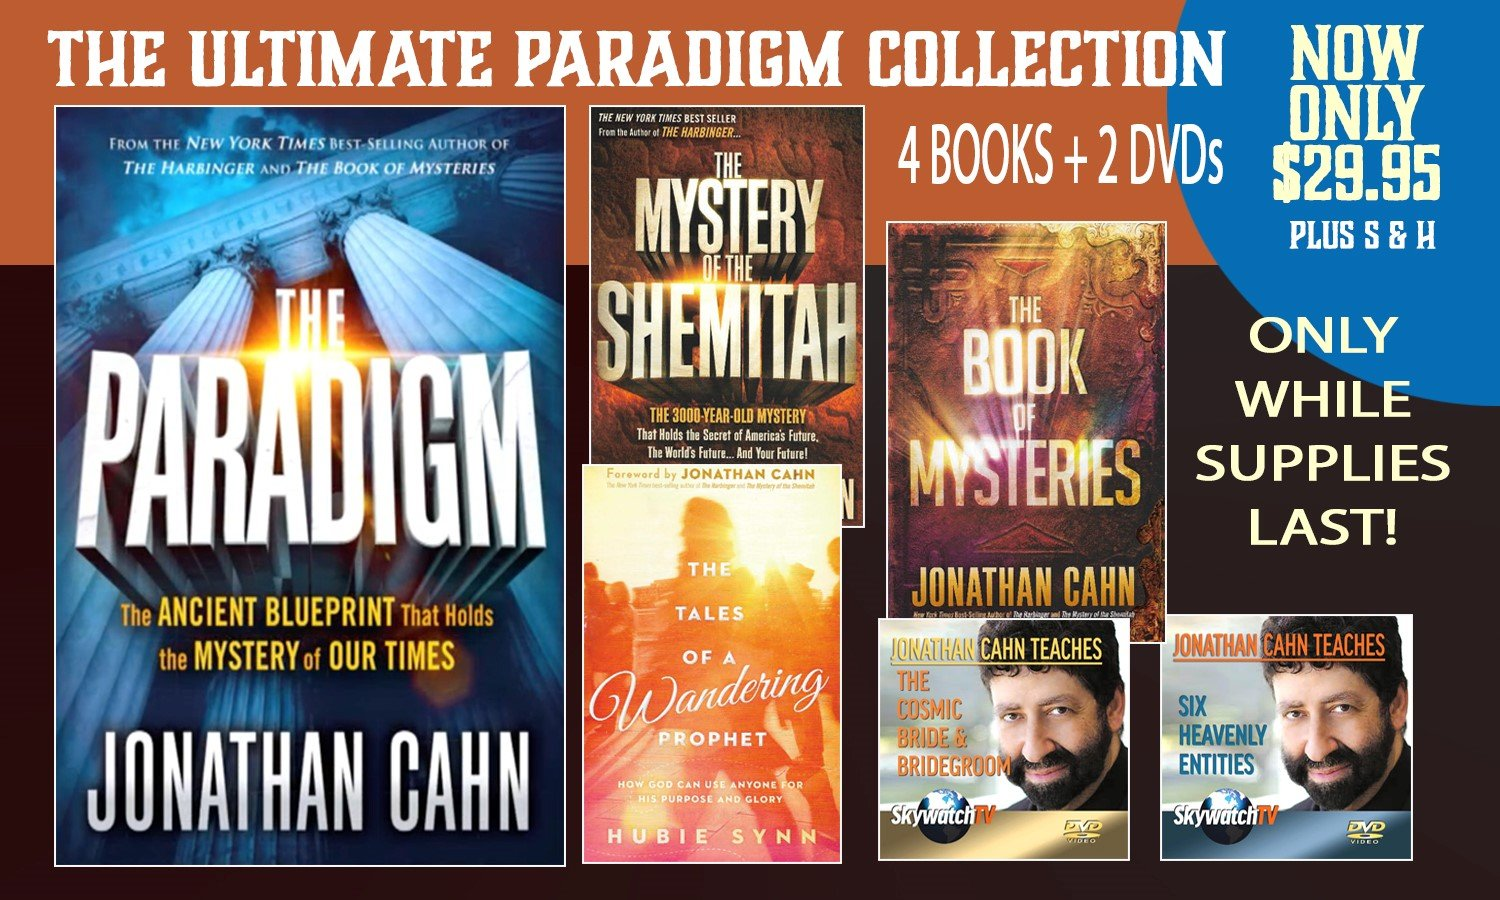 "FREE BOOKS & DVDS WITH THE BEST DEAL ANYWHERE ON RABBI JONATHAN CAHN'S EXPLOSIVE NEW BOOK ""THE PARADIGM"" (WHILE SUPPLIES LAST!)"